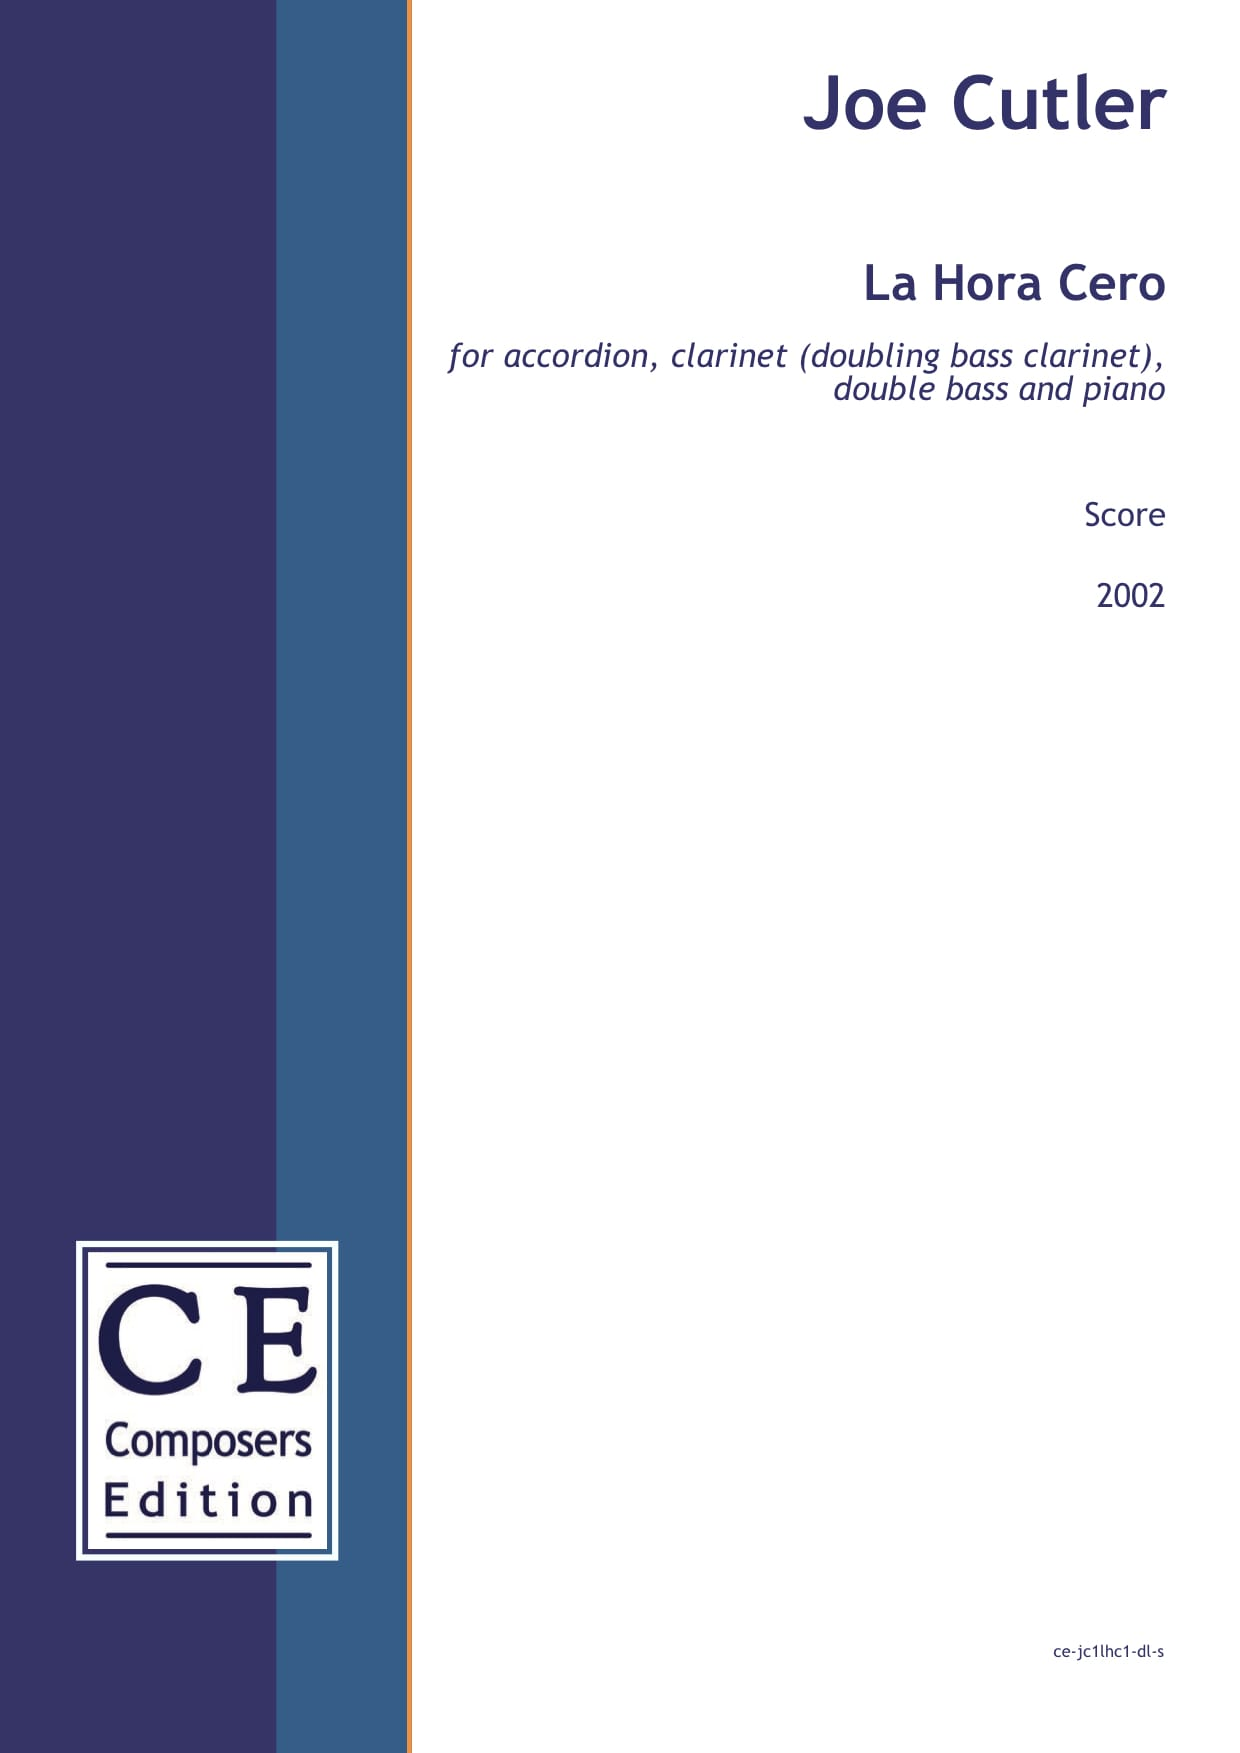 Joe Cutler: La Hora Cero for accordion, clarinet (doubling bass clarinet), double bass and piano